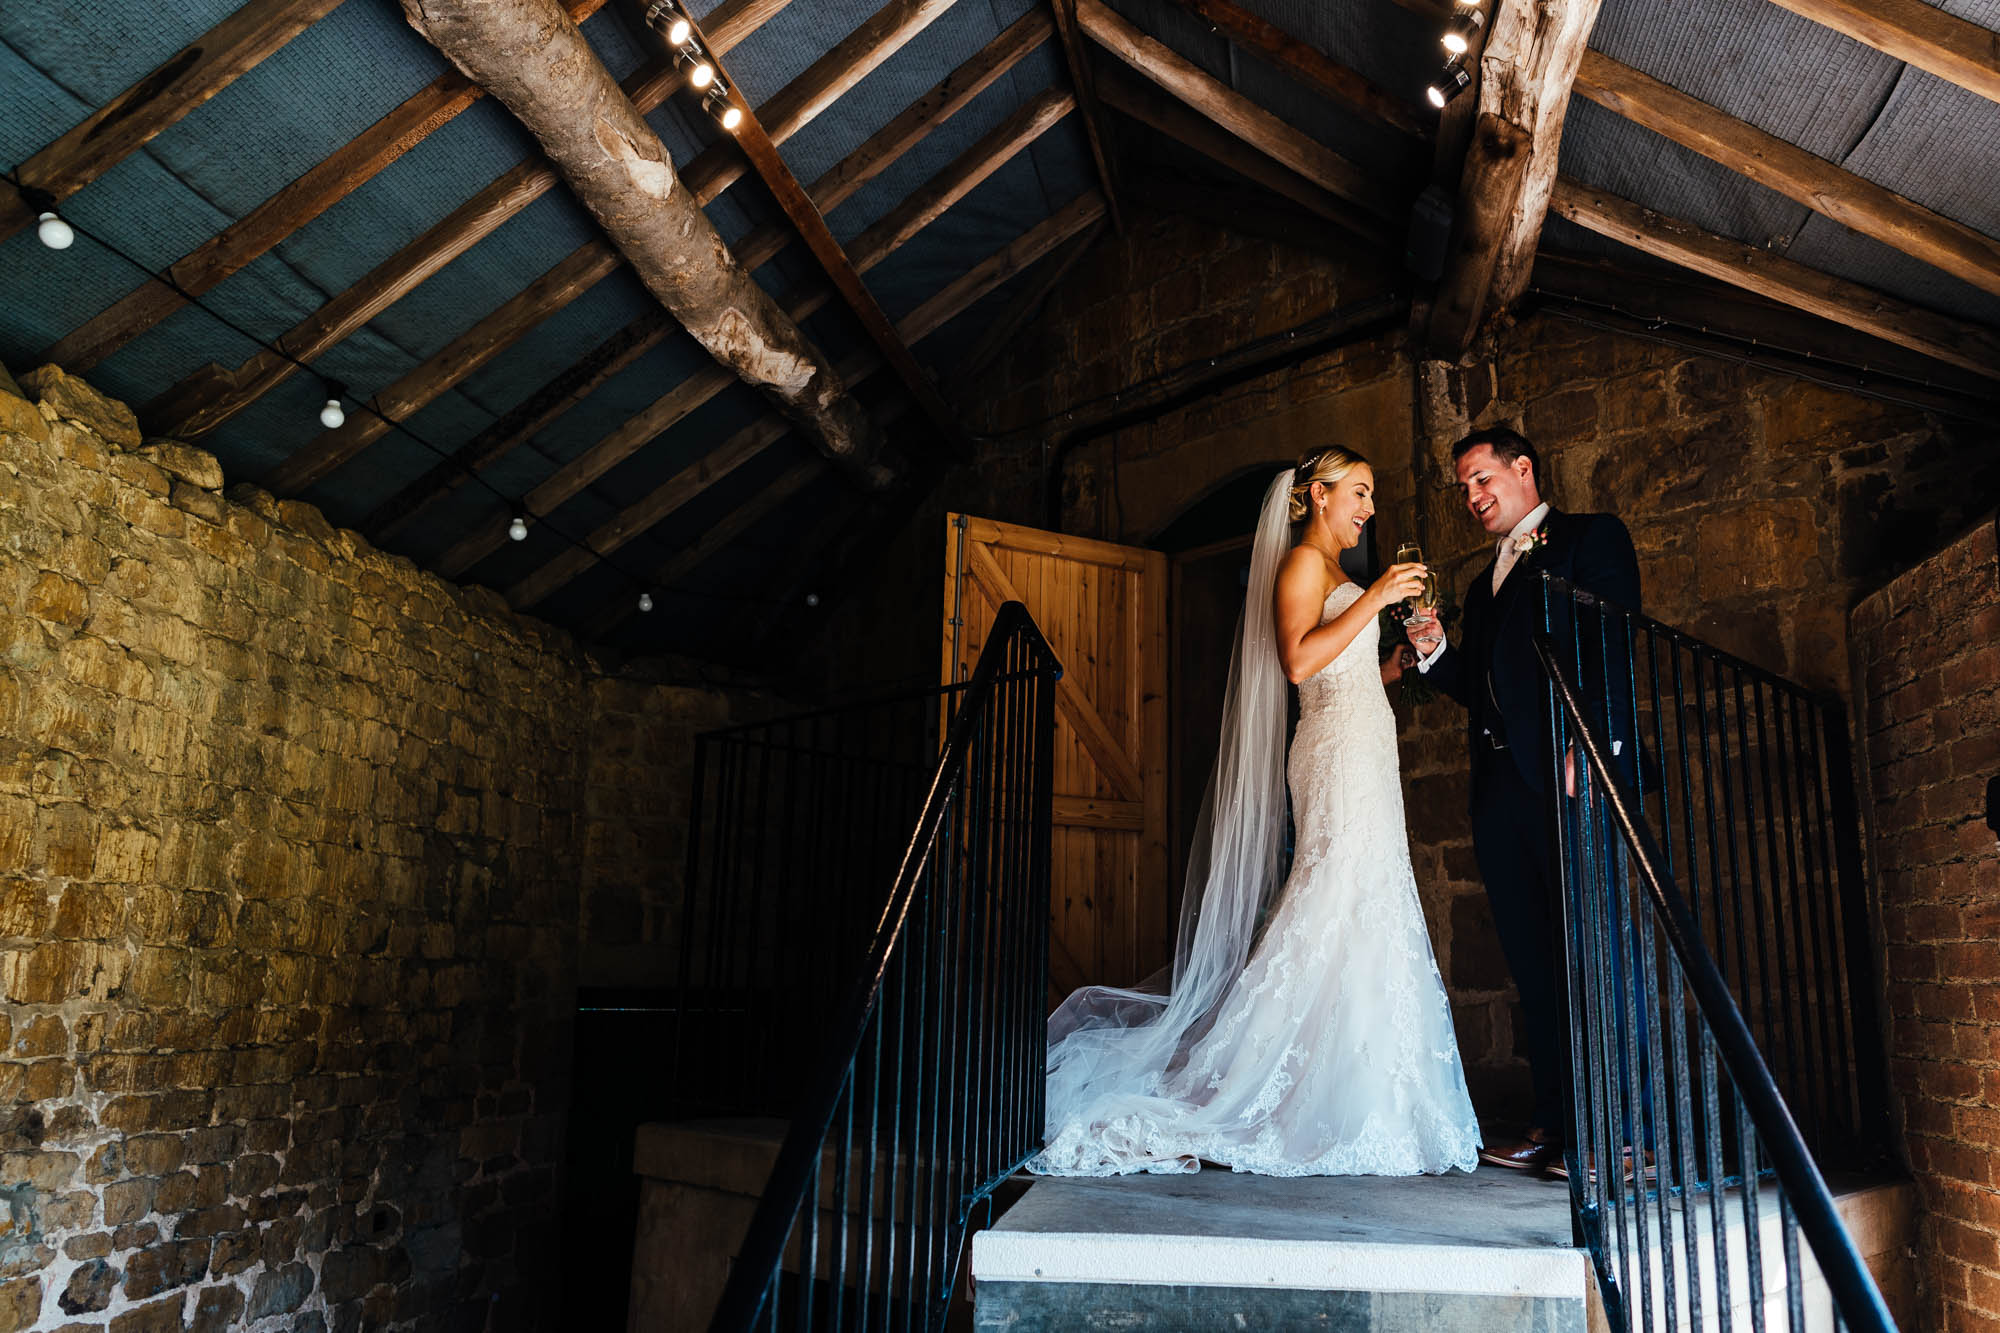 wedding-at-the-barns-at-hunsbury-hill-25